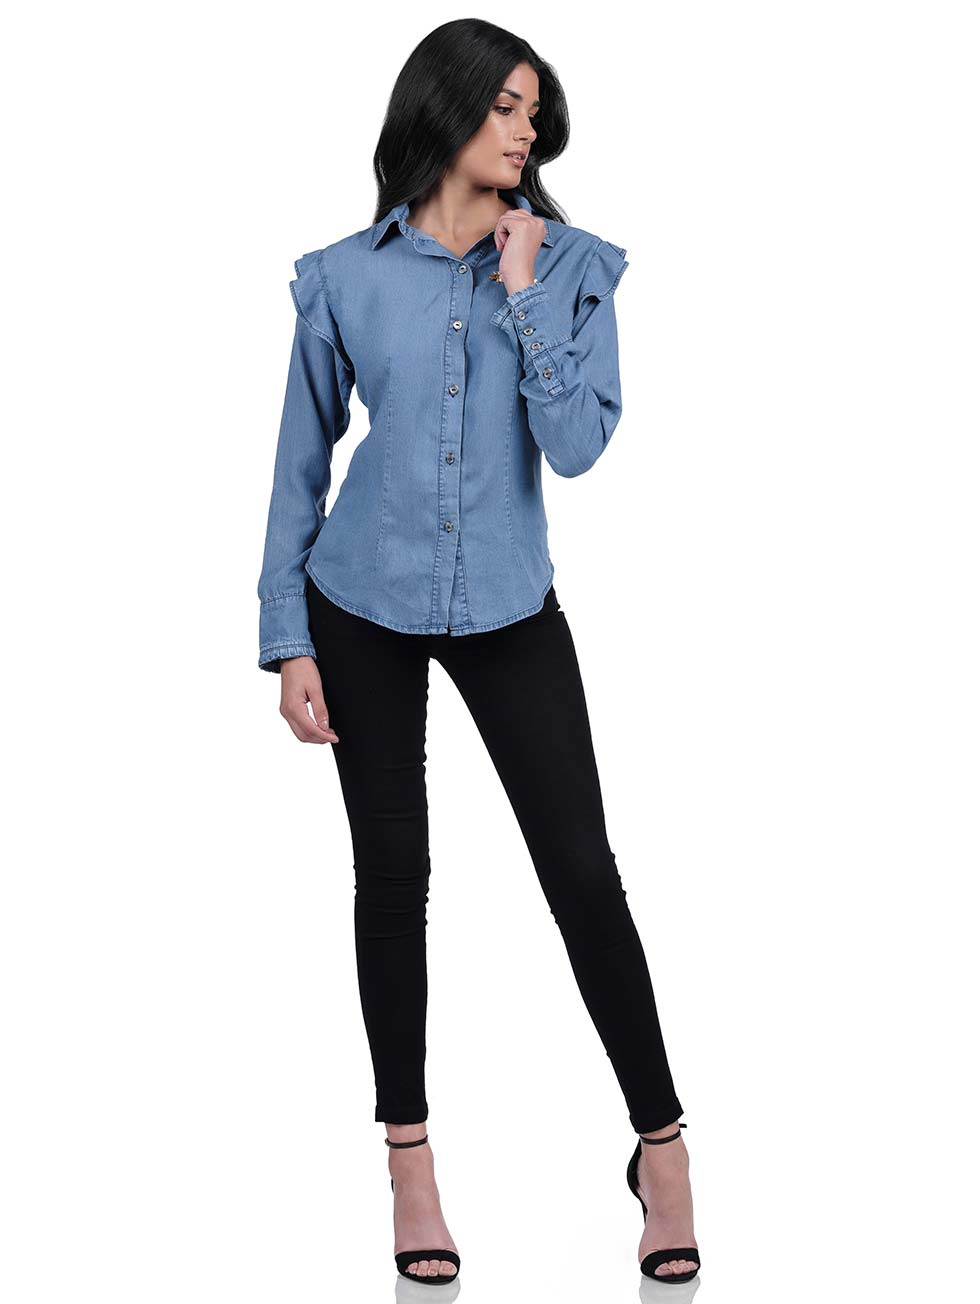 Cynthia Long Sleeve Blouse